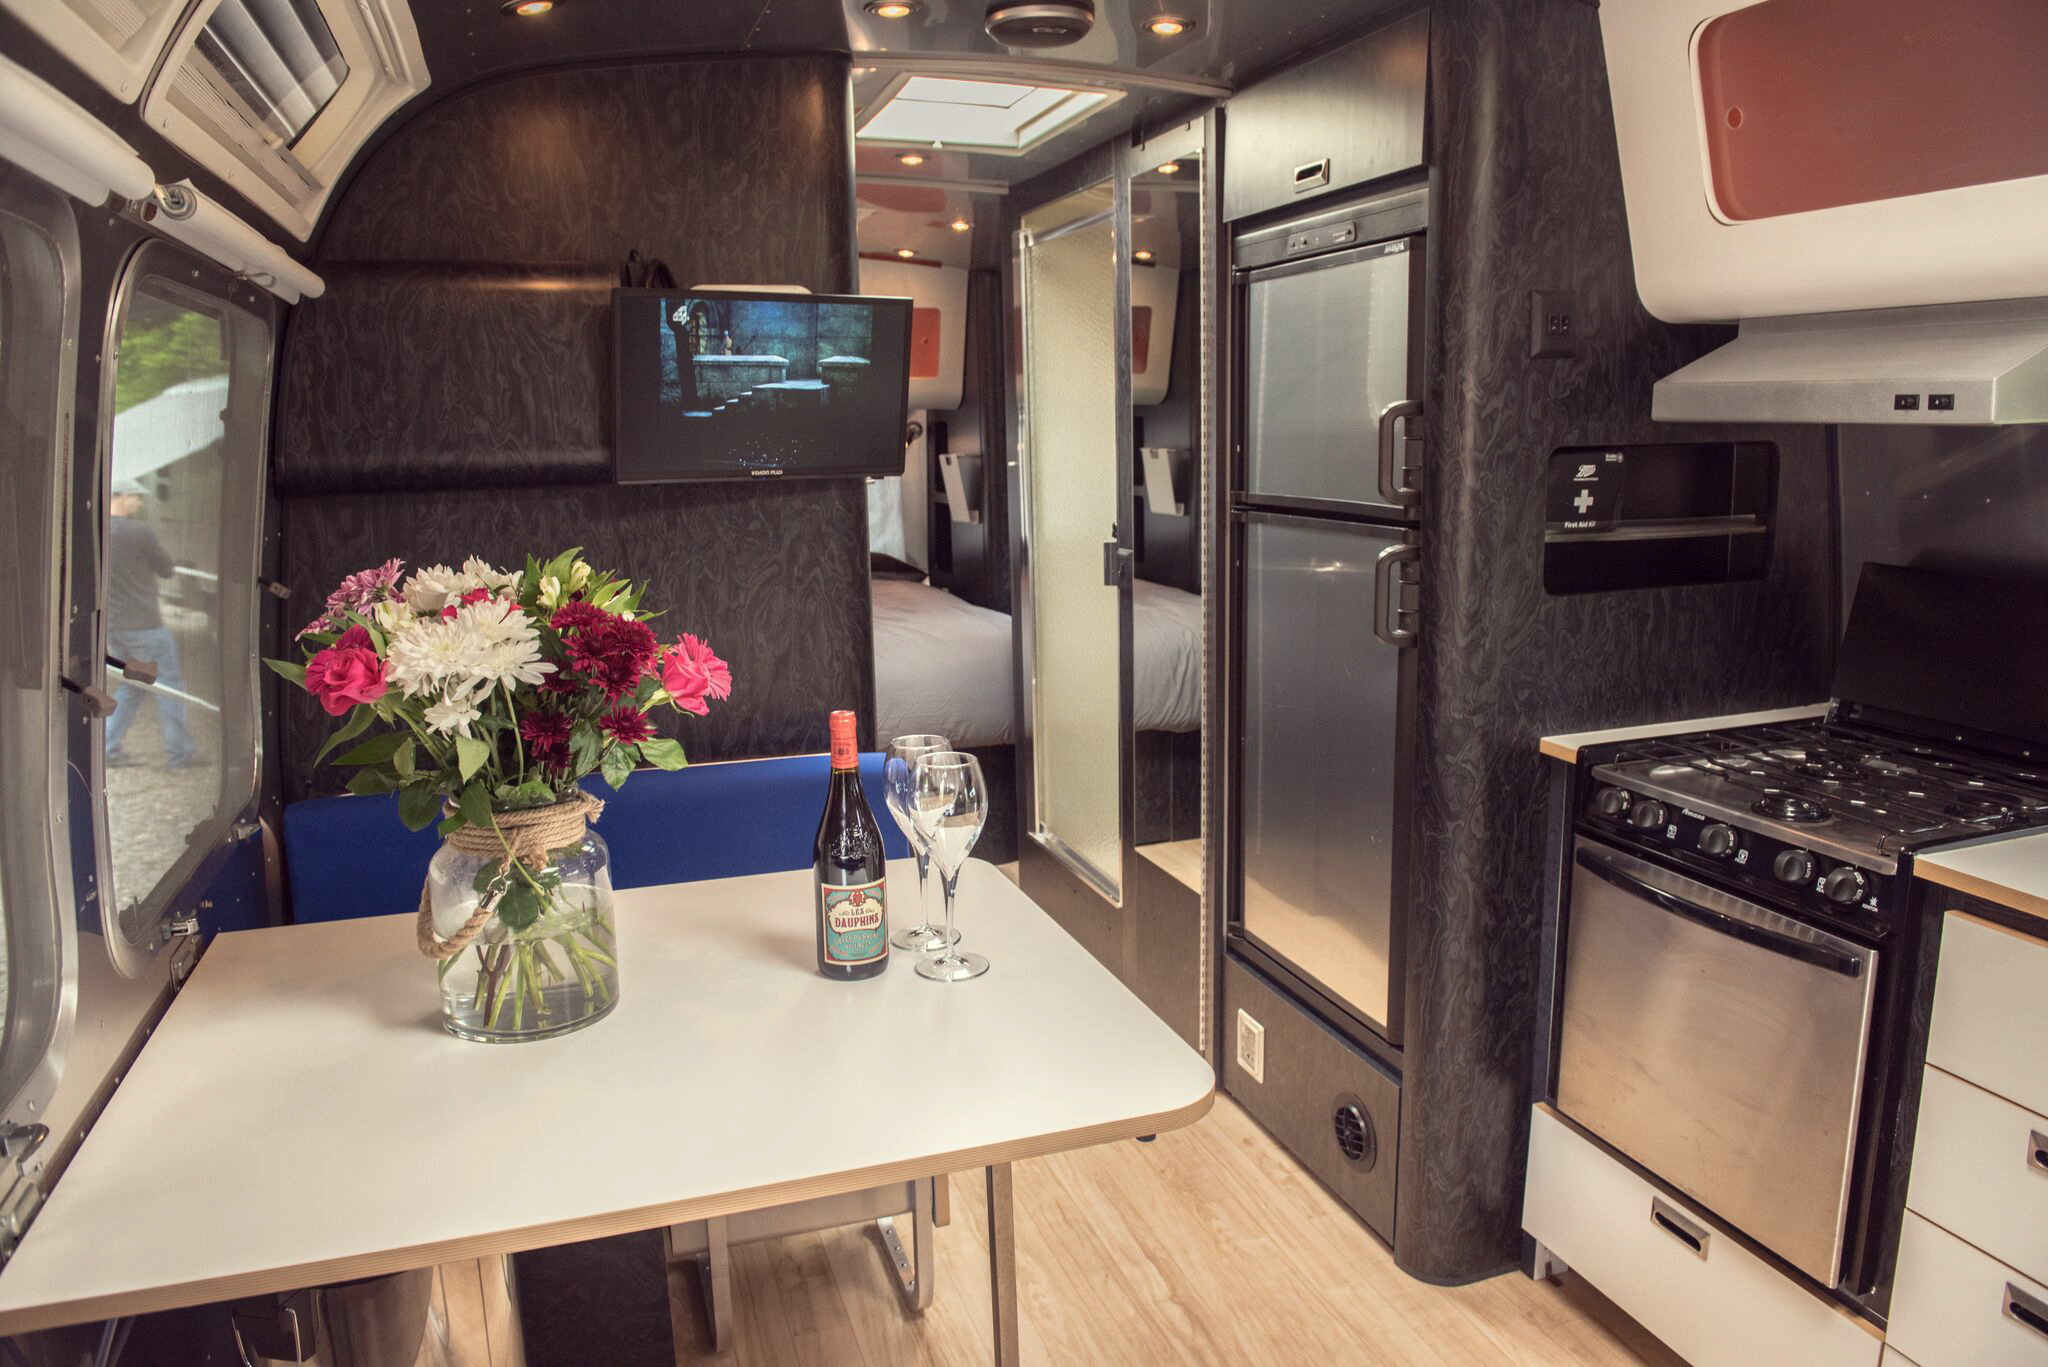 Copy of Hotel Bell Tent Accommodation Airstream Trailer Interior Kitchen